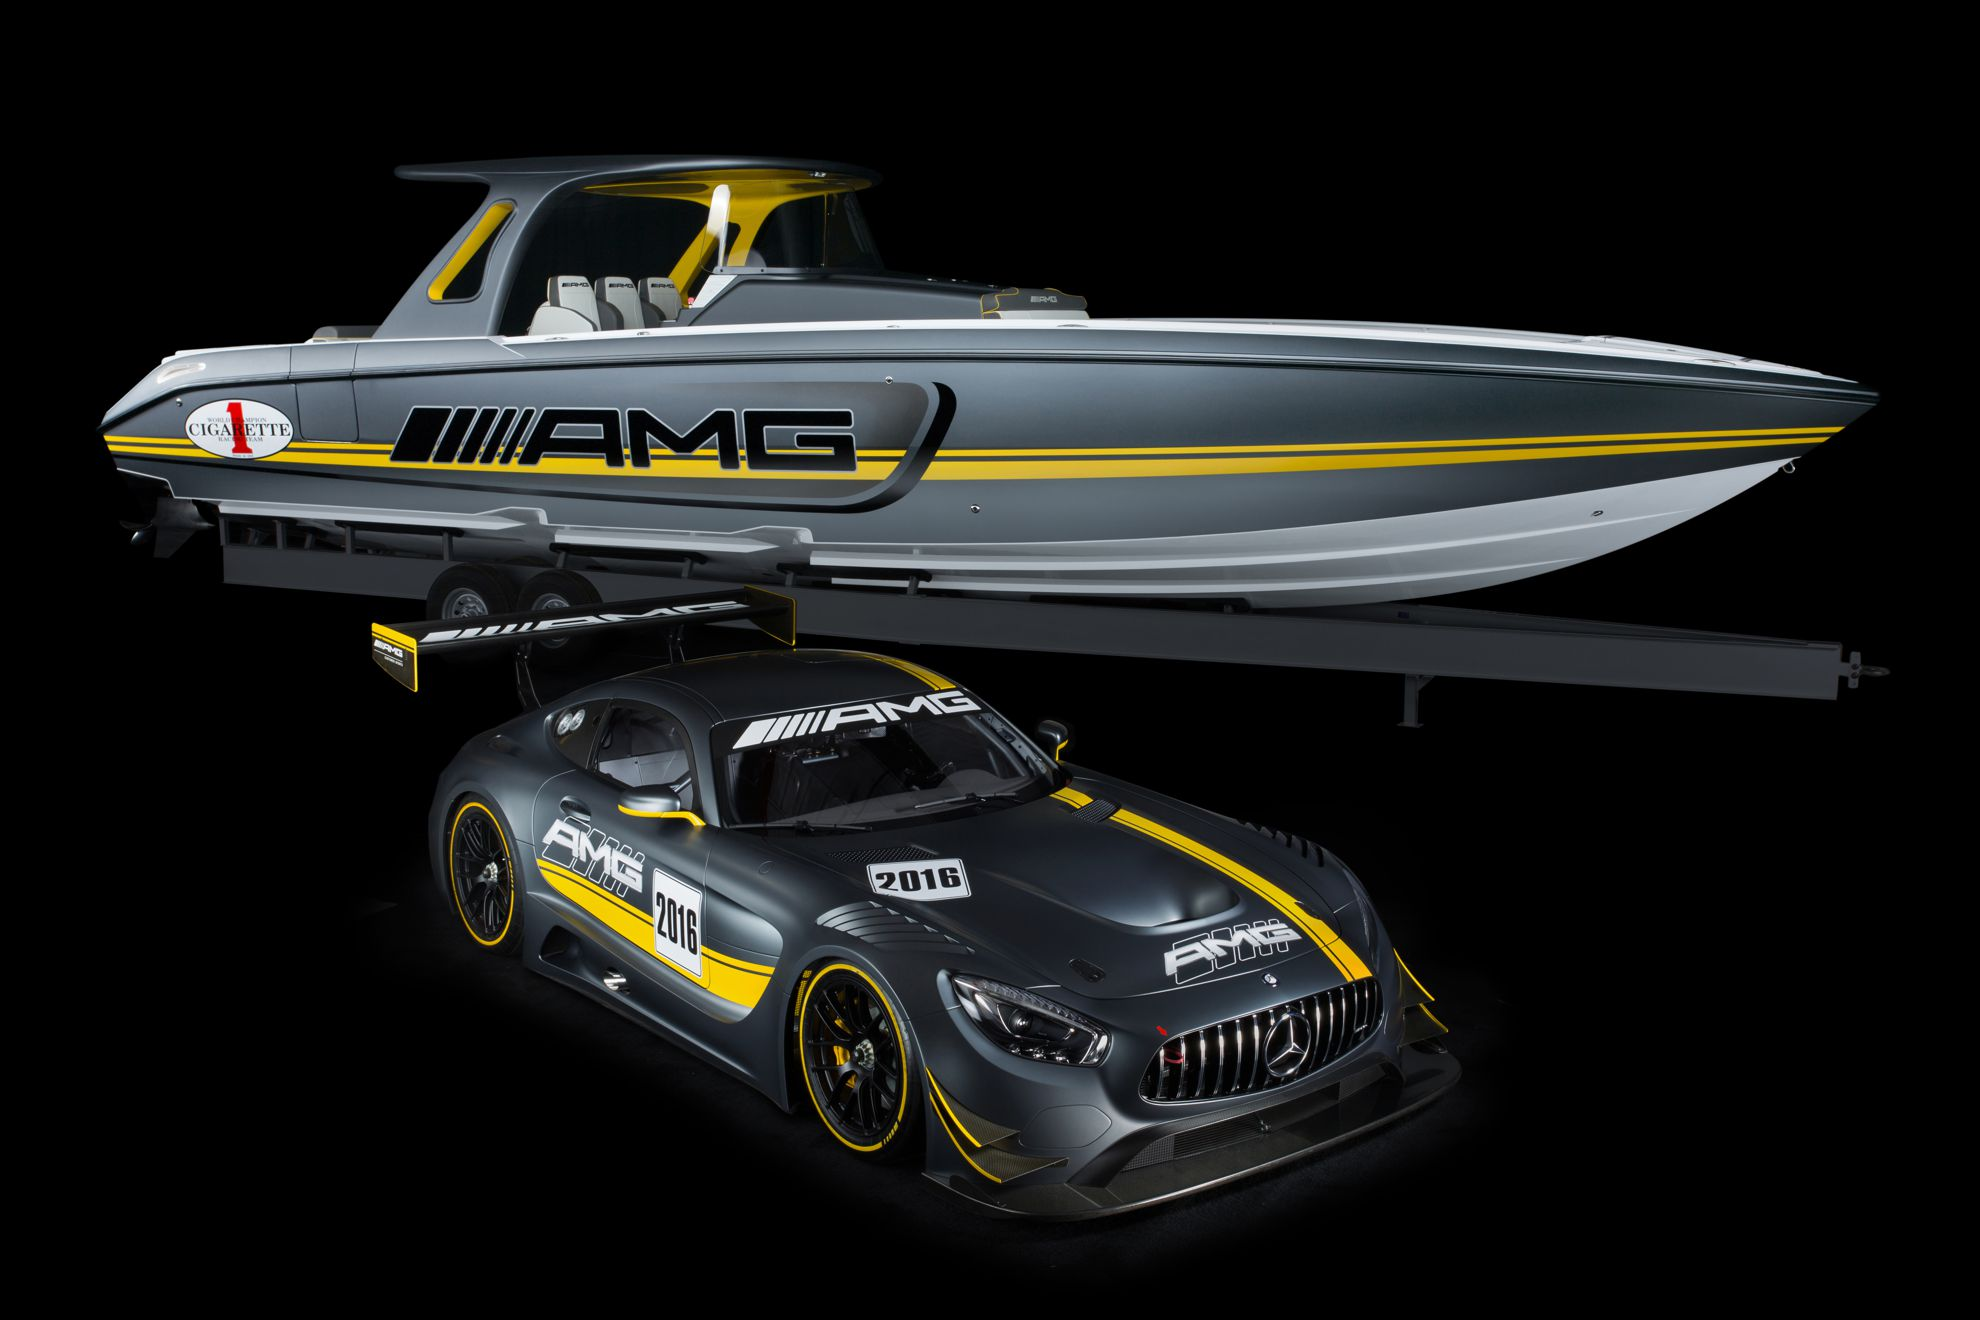 mercedes-benz-amg-power-boat